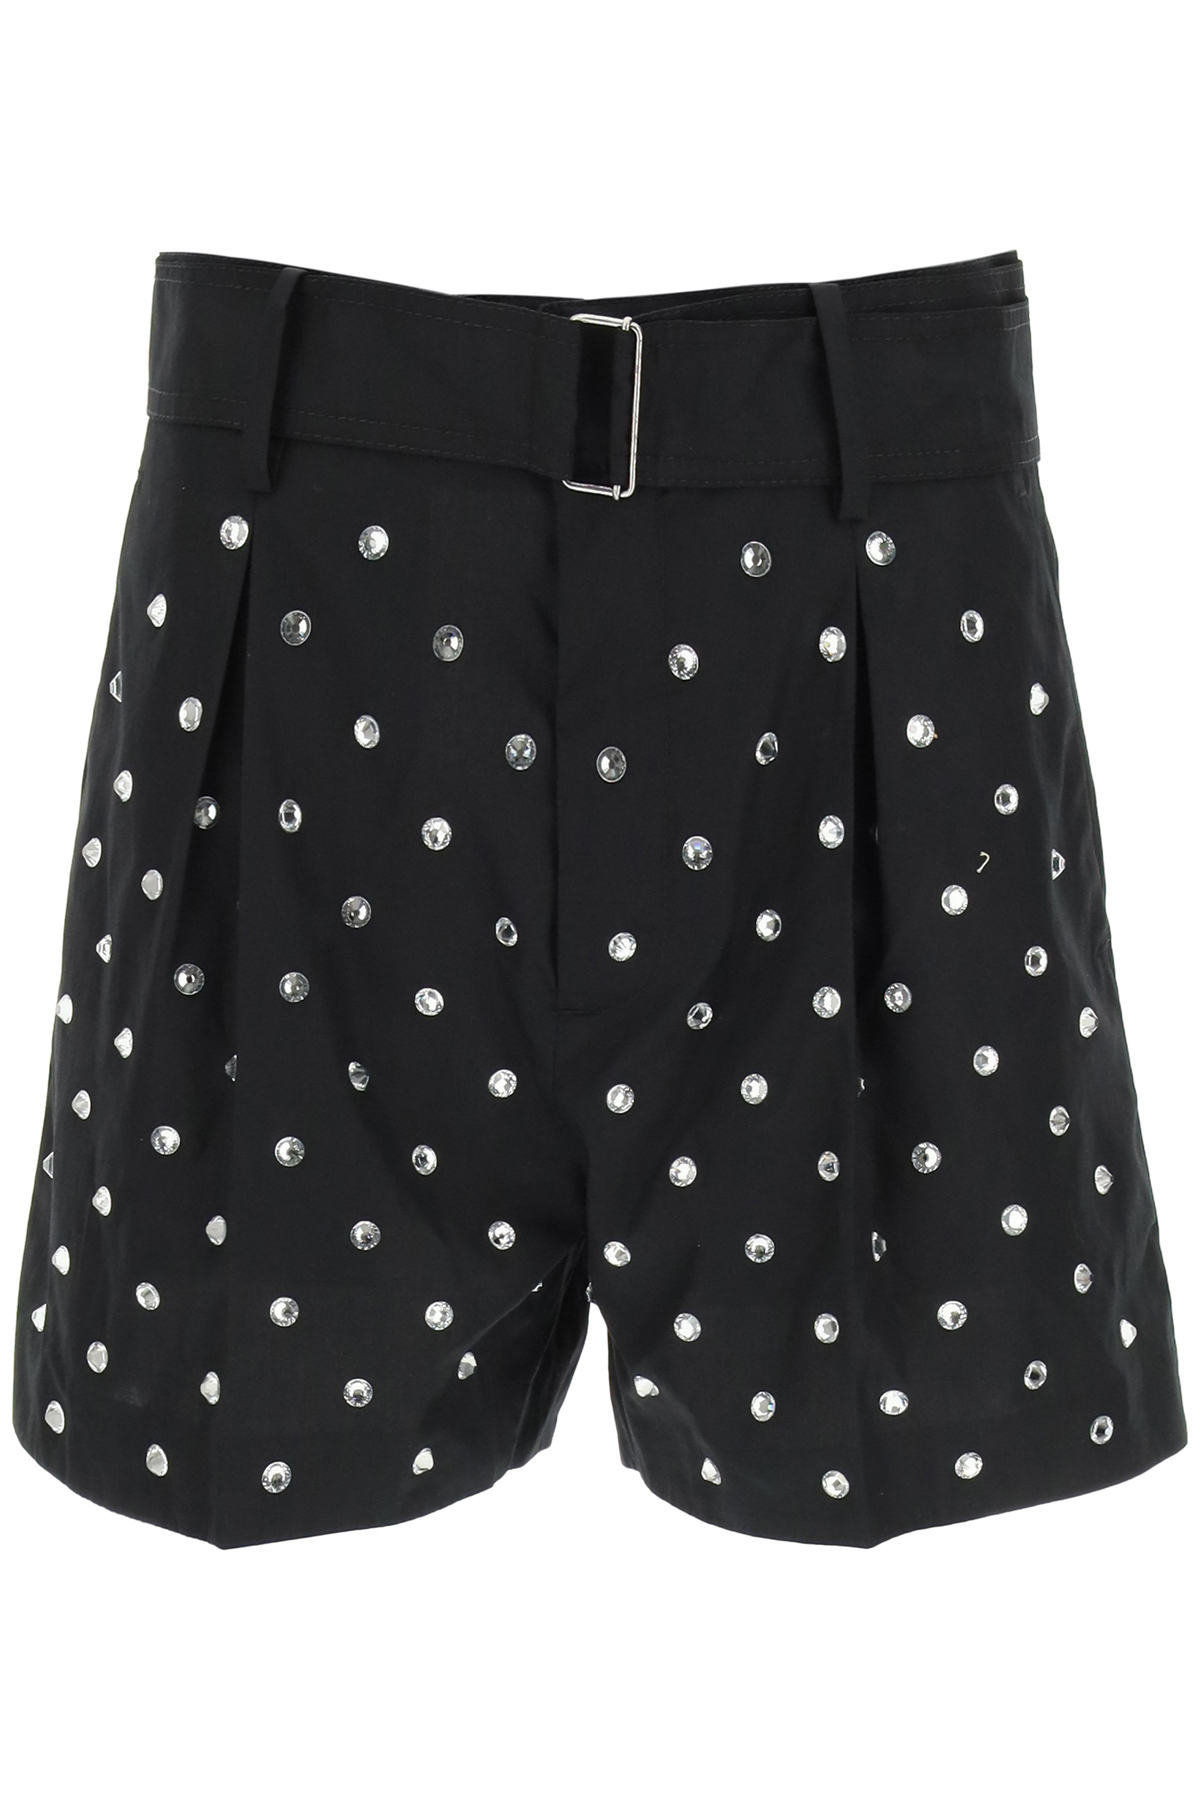 N°21 JEWEL SHORTS WITH CRYSTALS